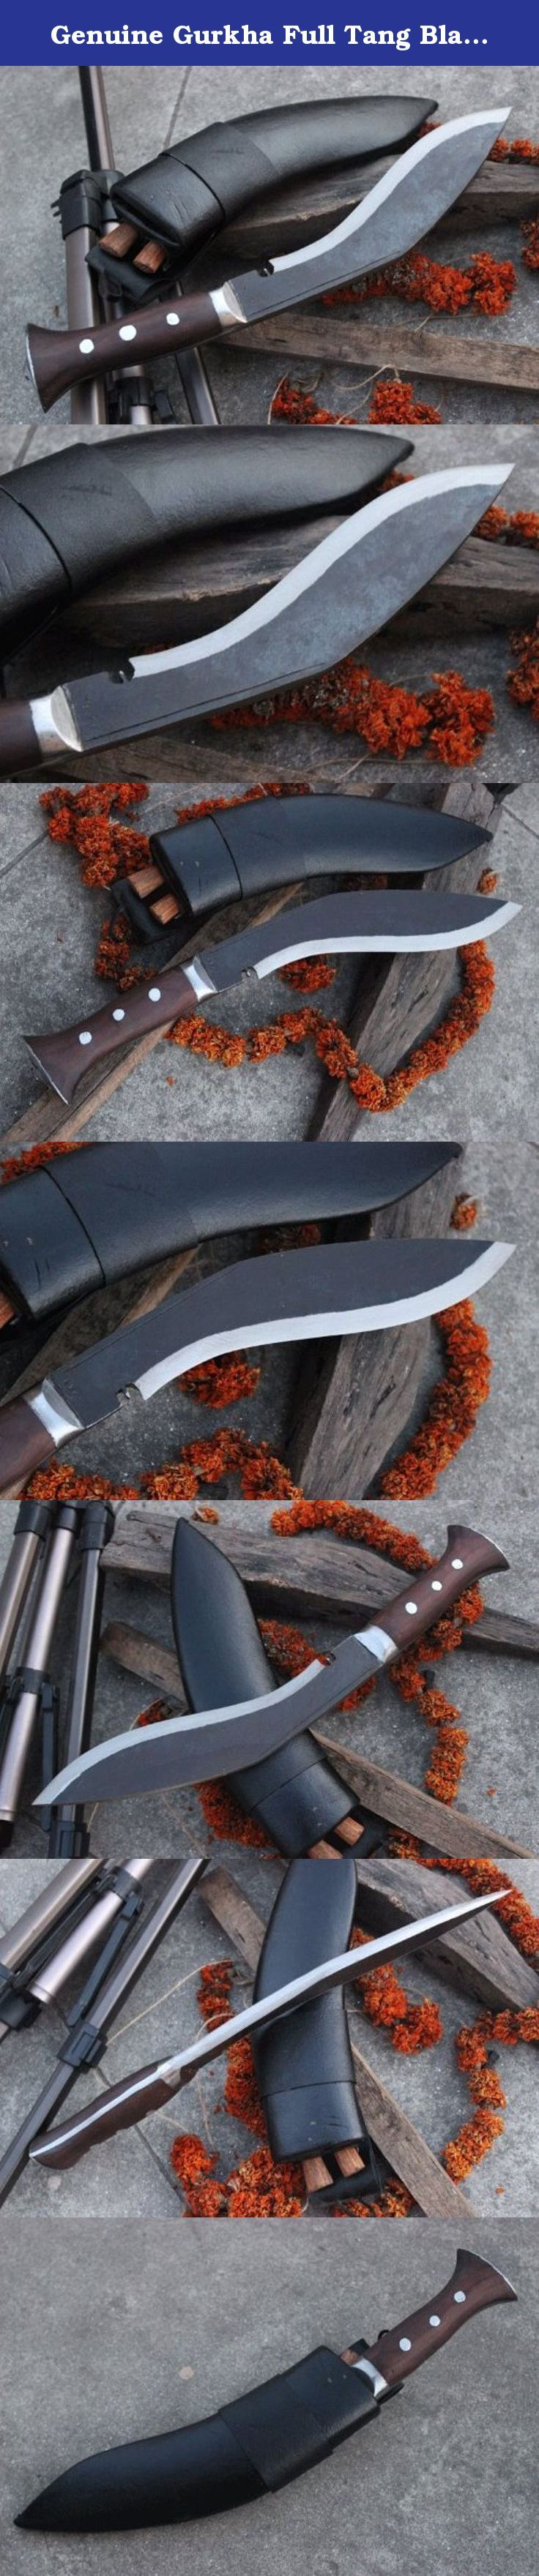 """Genuine Gurkha Full Tang Blade Rust Free Kukri Knife - 10"""" Blade Panawal Angkhola Village Farmer Kukri - Handmade By Ex Gurkha Khukuri House in Nepal. 10"""" Rust Free Blade Panawal Angkhola Farmer Khukuri Full Tang Handle Kukri. Ang + khola are two different words that take two different meaning. Angkhola is a popular village from eastern side of Nepal. The handle of the khukuri from this village is always single piece that goes all the way through bottom of the blade. Ang means the back…"""